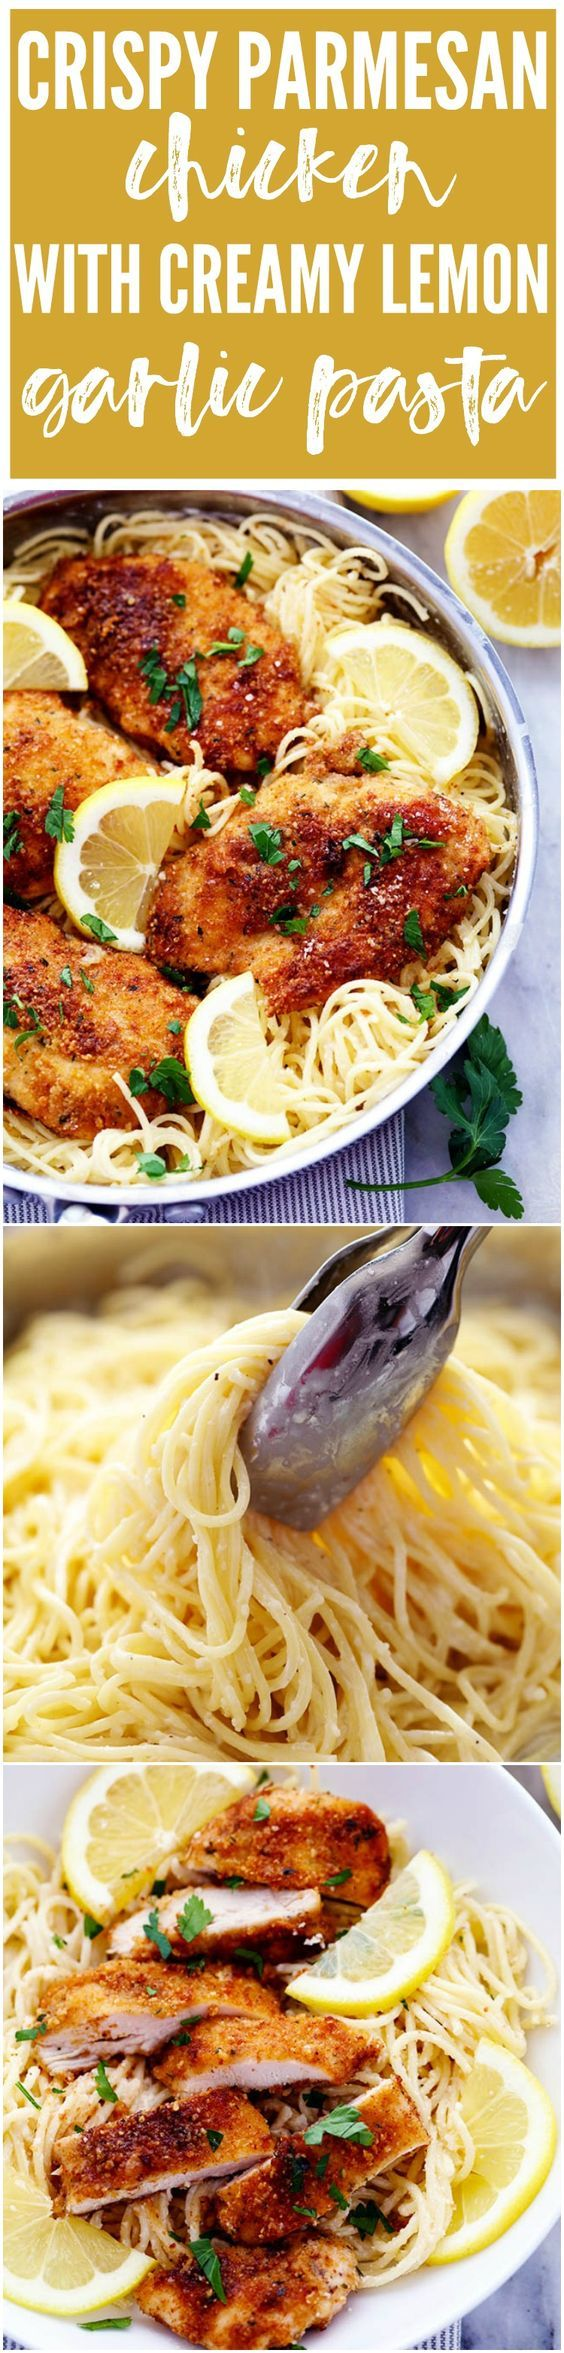 Crispy, tender and juicy parmesan crusted chicken over the most incredible creamy lemon garlic pasta! This is a must make meal!: